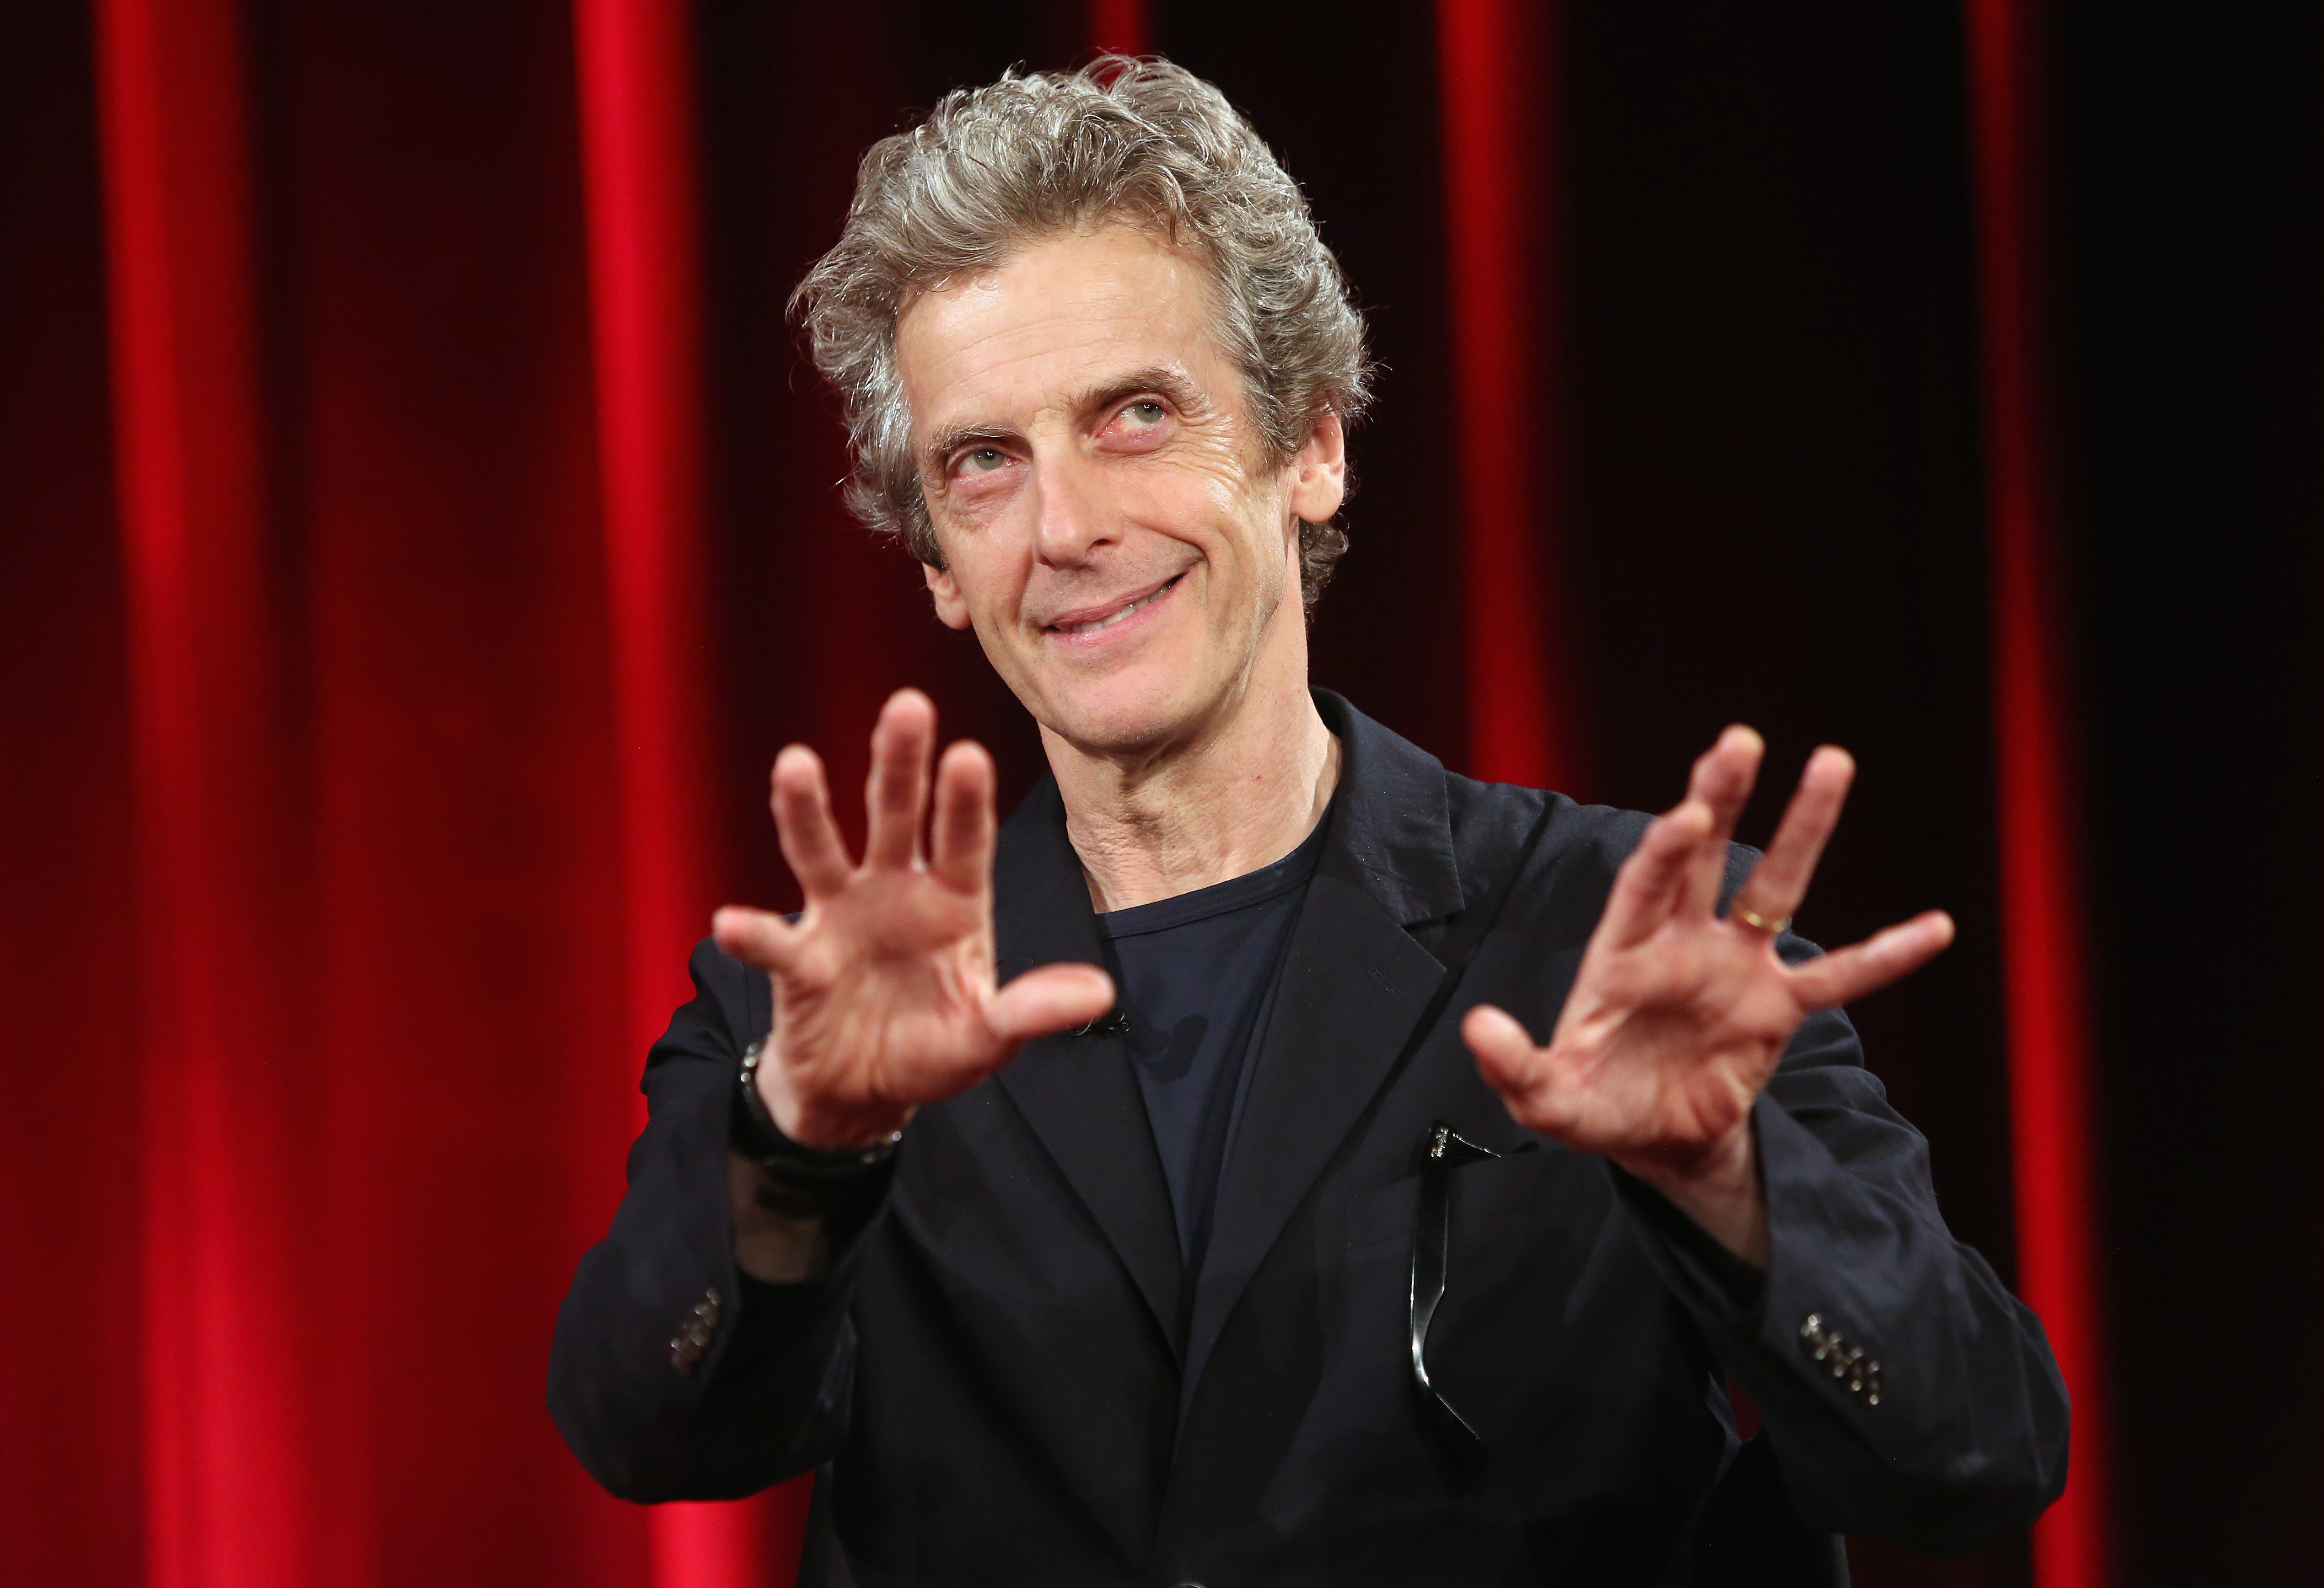 Peter Capaldi of the British television series Doctor Who speaks at the Apple Store on July 17, 2015 in Berlin, Germany.